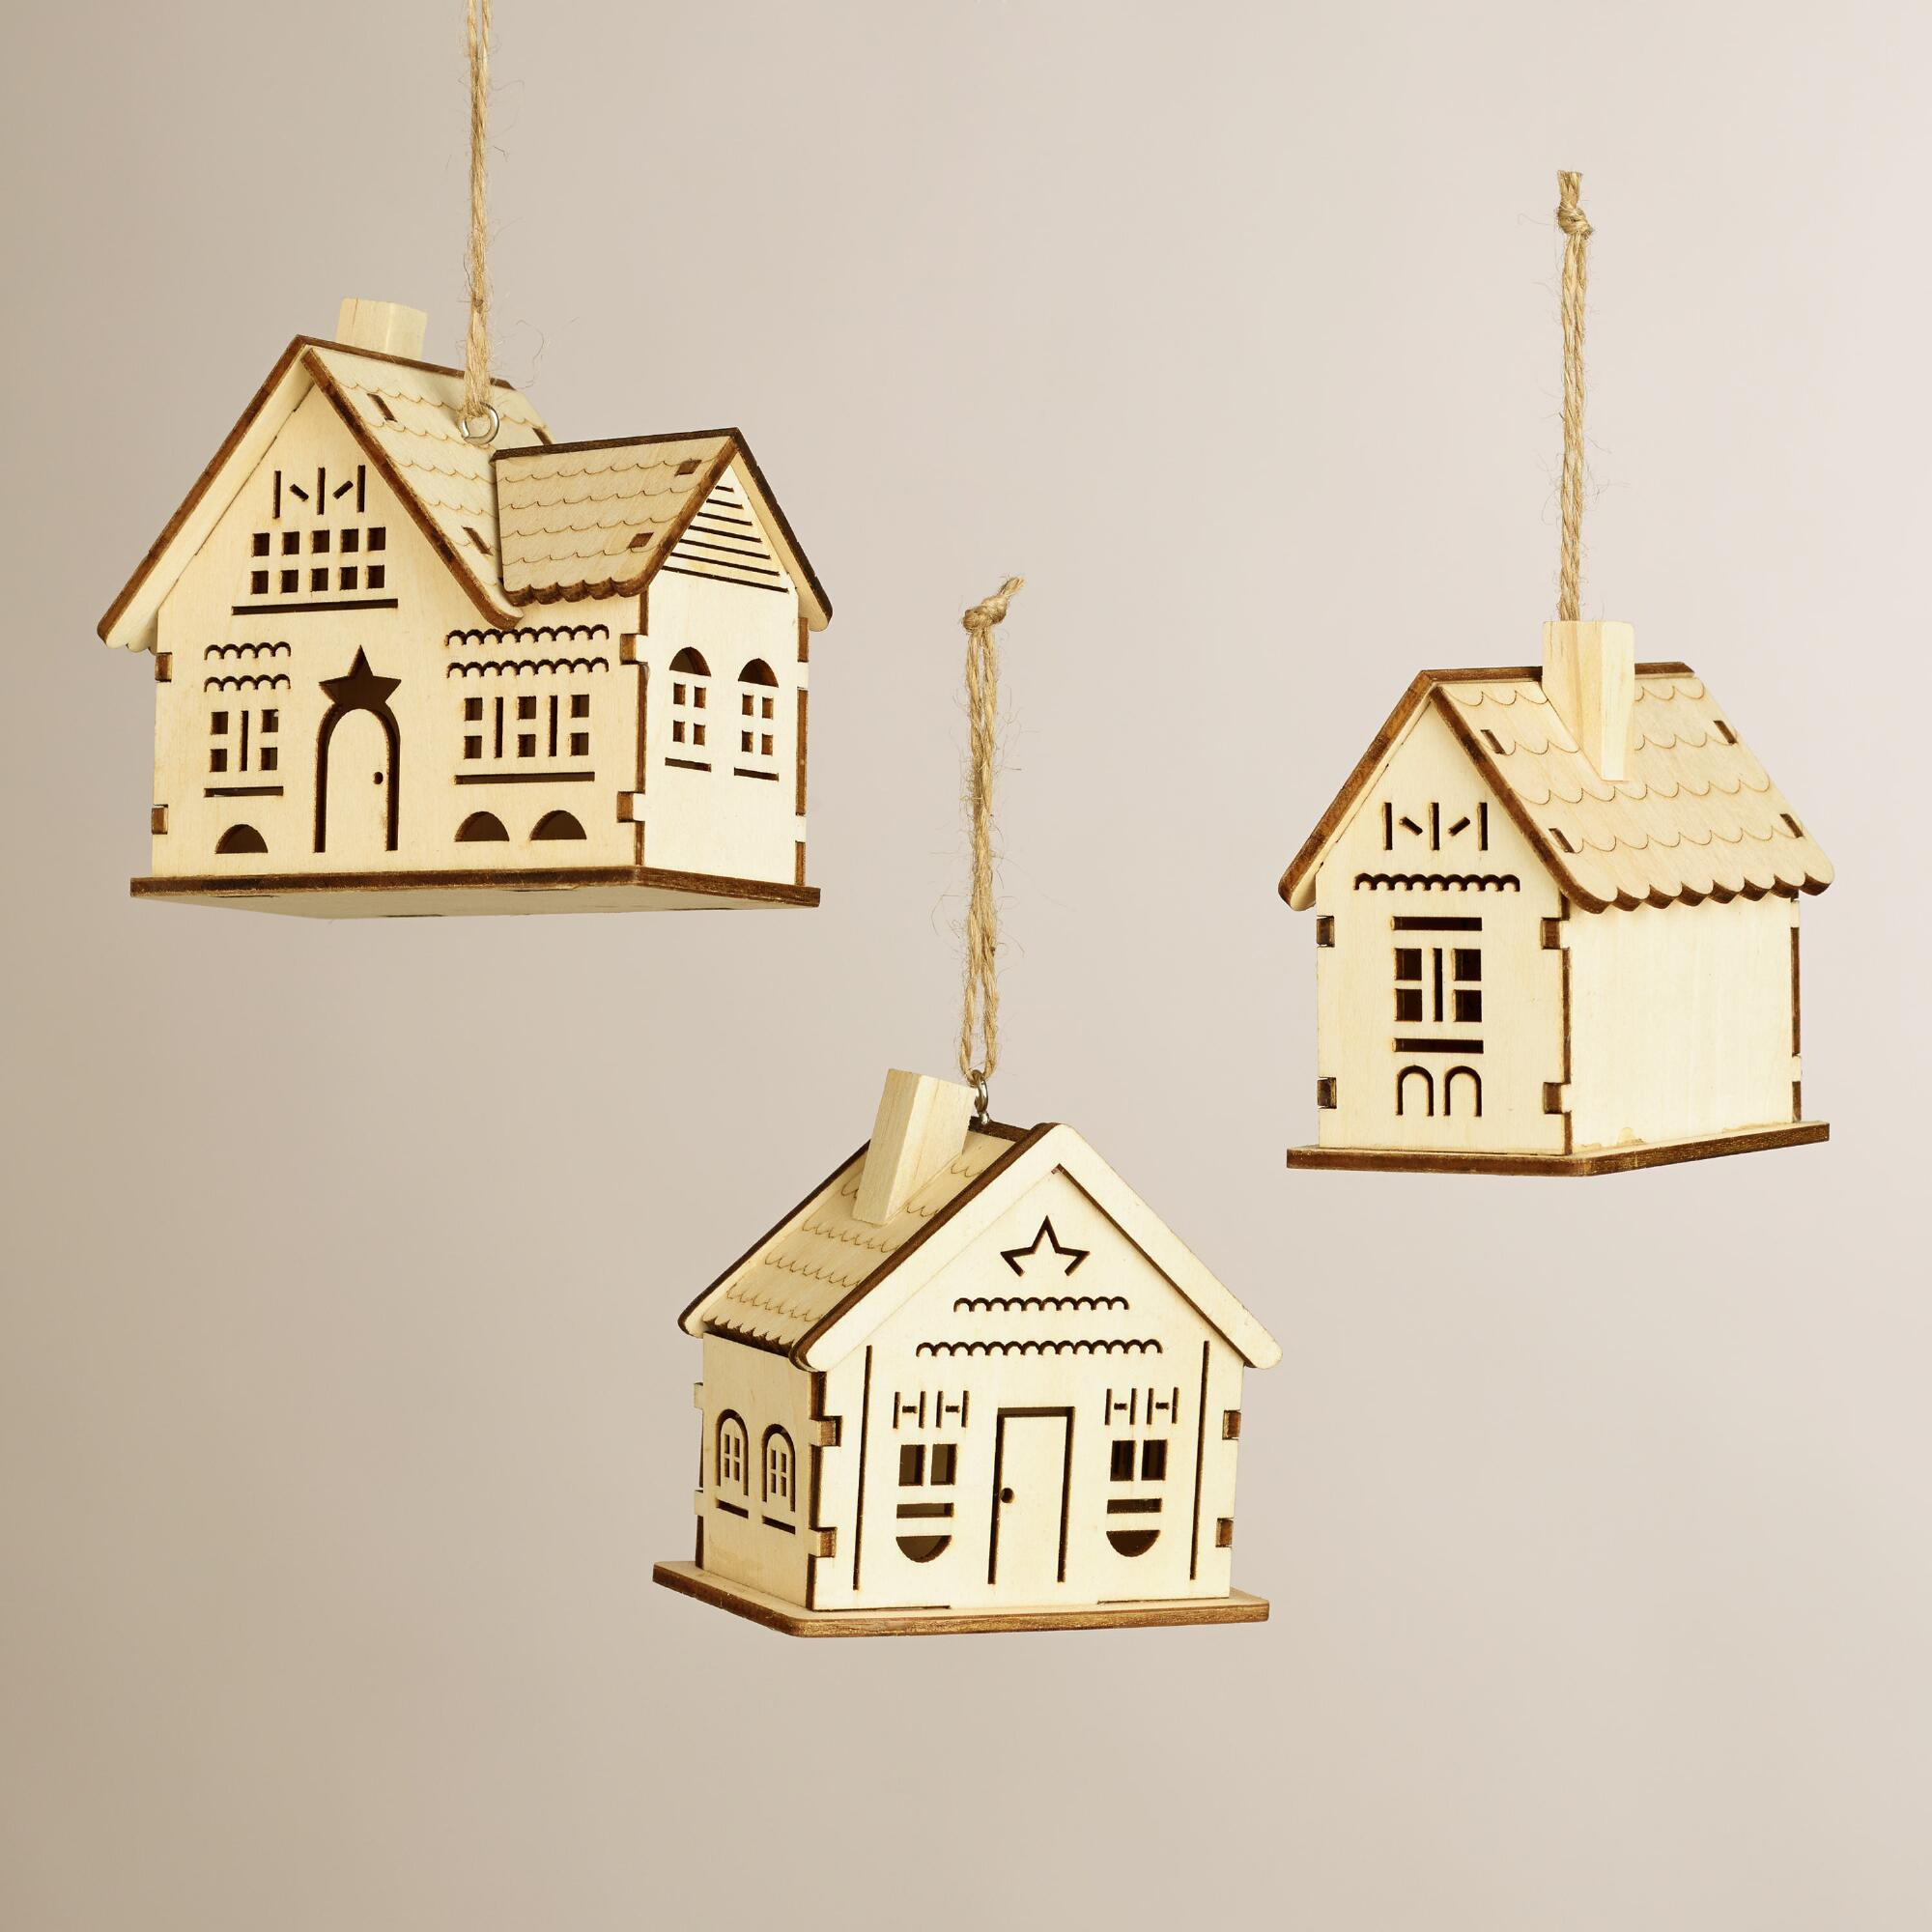 Laser cut wooden house ornaments set of 3 world market for Home ornaments